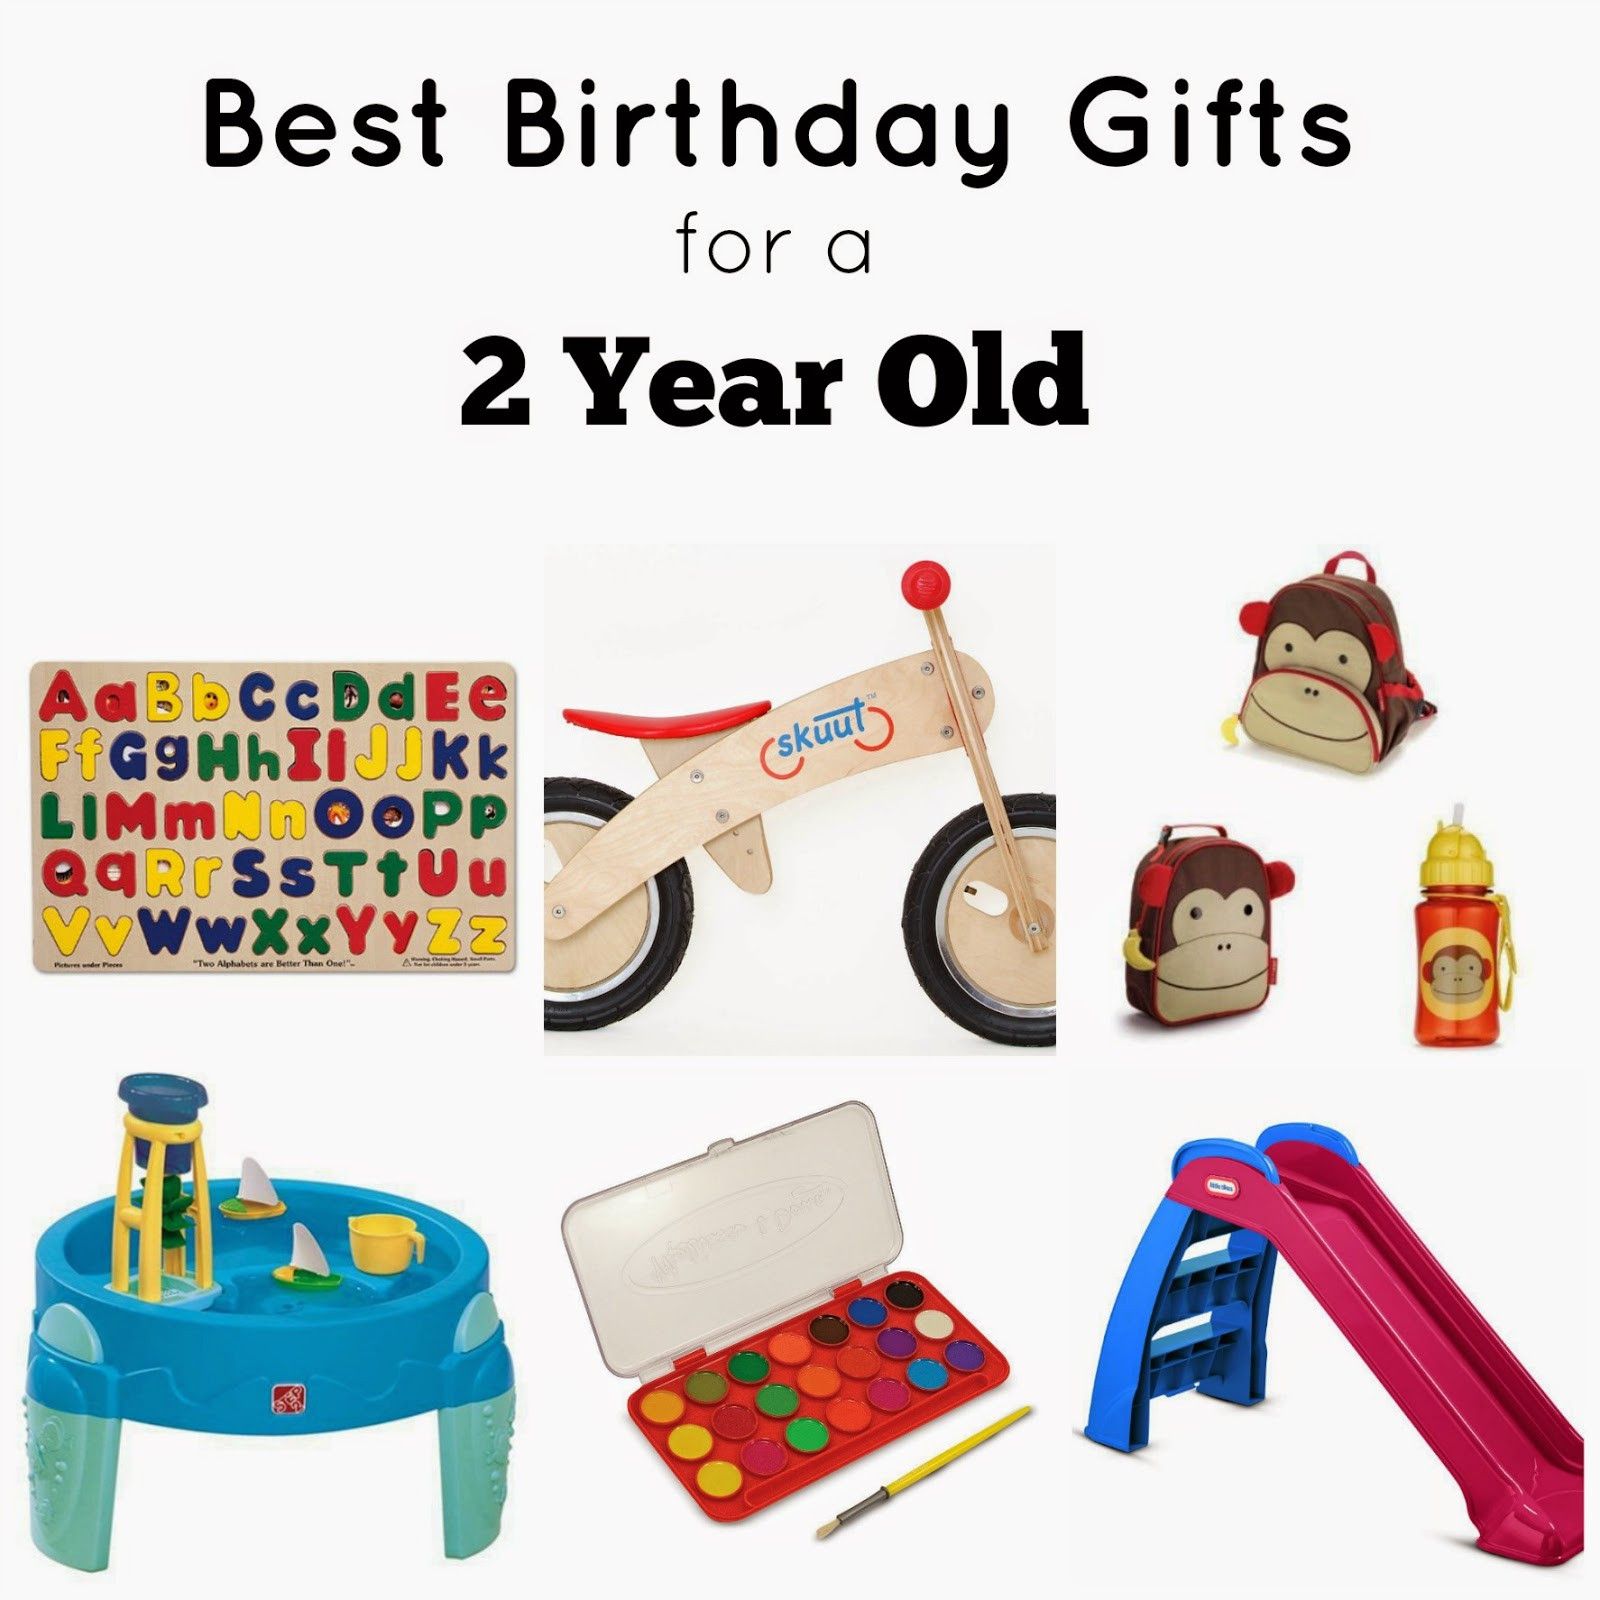 Best Gift Ideas For A 2 Year Old  Our Life on a Bud Best Birthday Gifts for a 2 Year Old